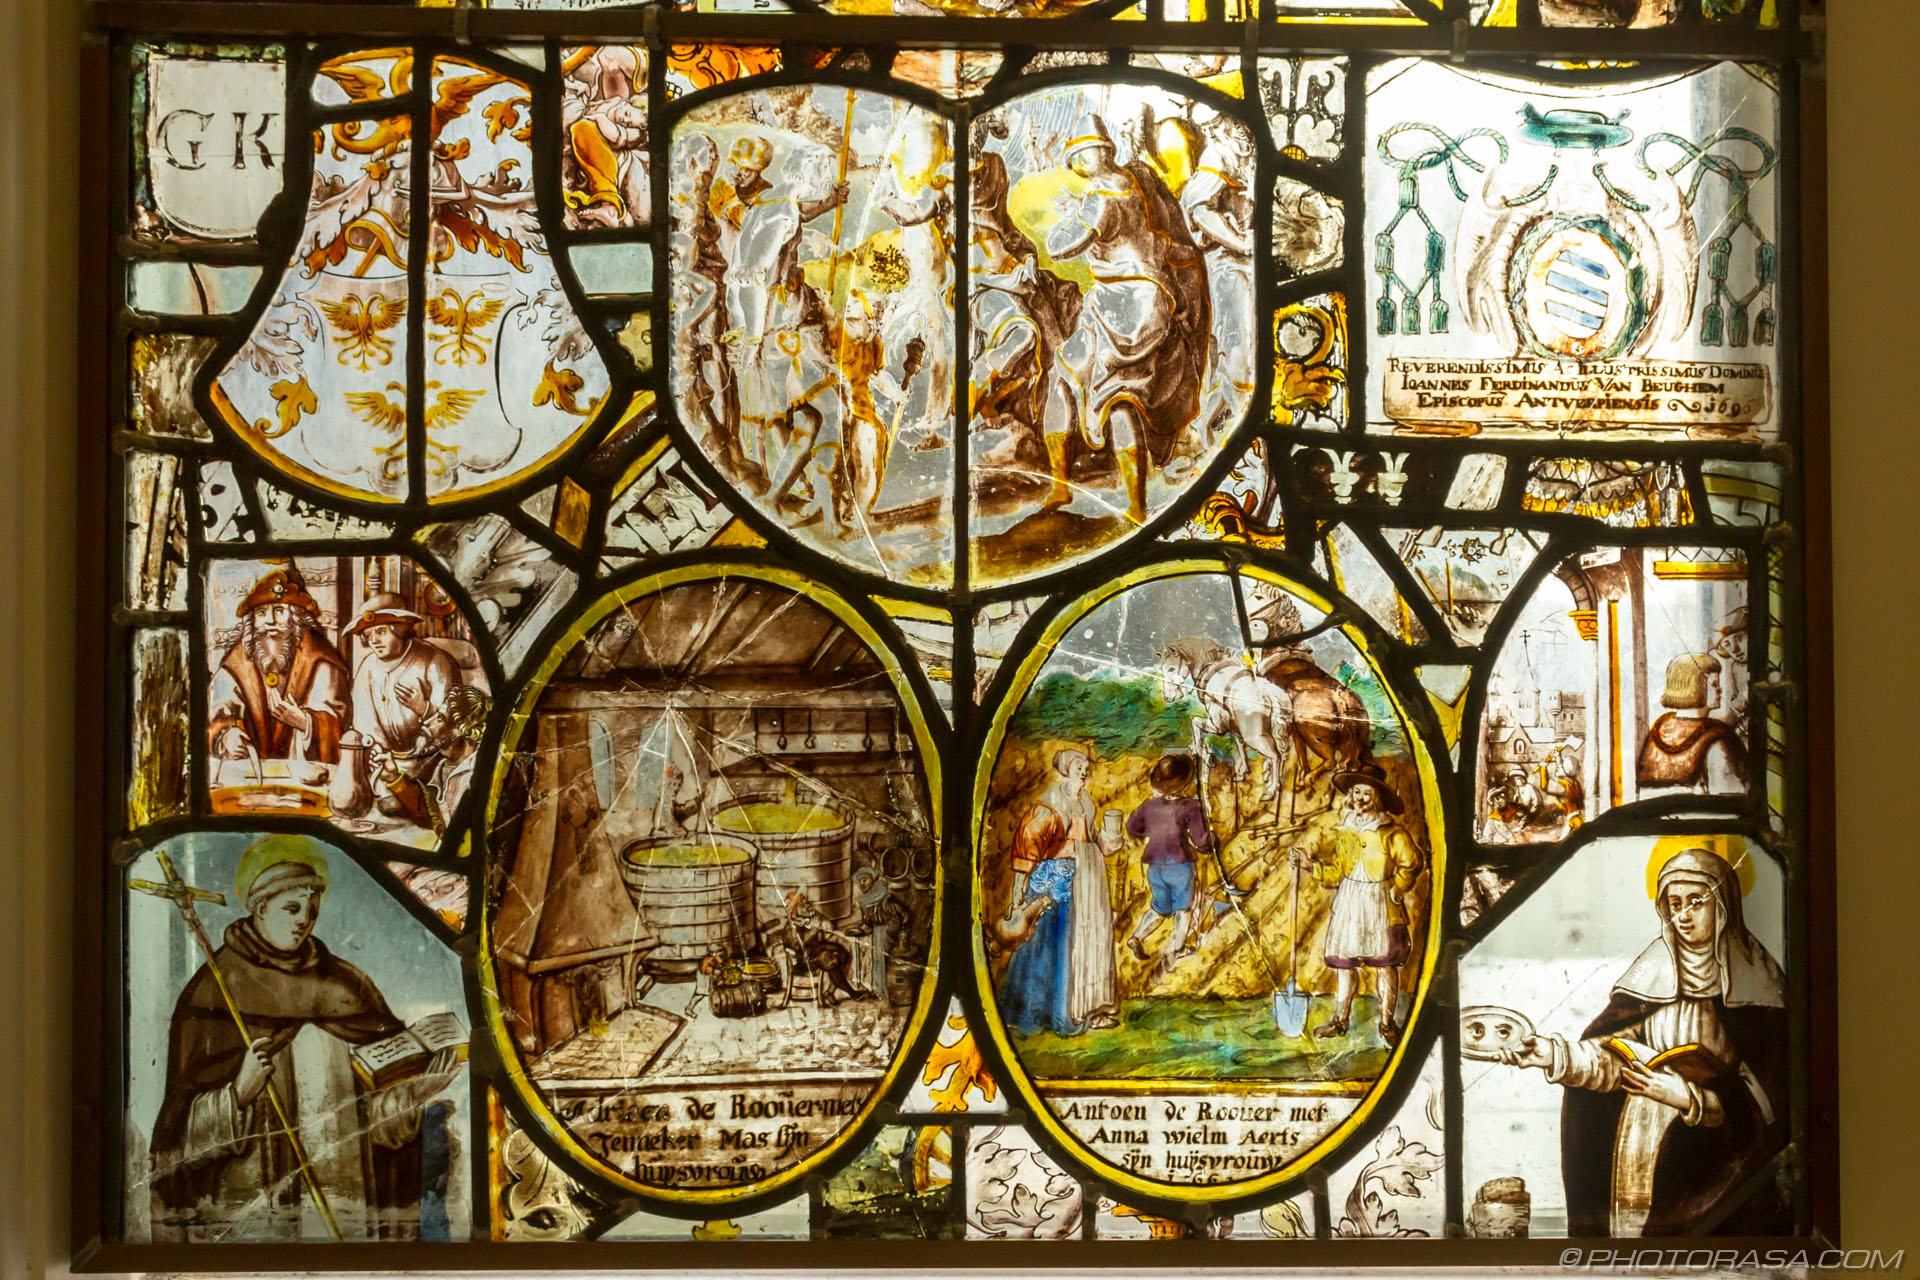 http://photorasa.com/old-dutch-and-flemish-stained-glass/stained-glass-of-farming-scenes-and-rural-workers/